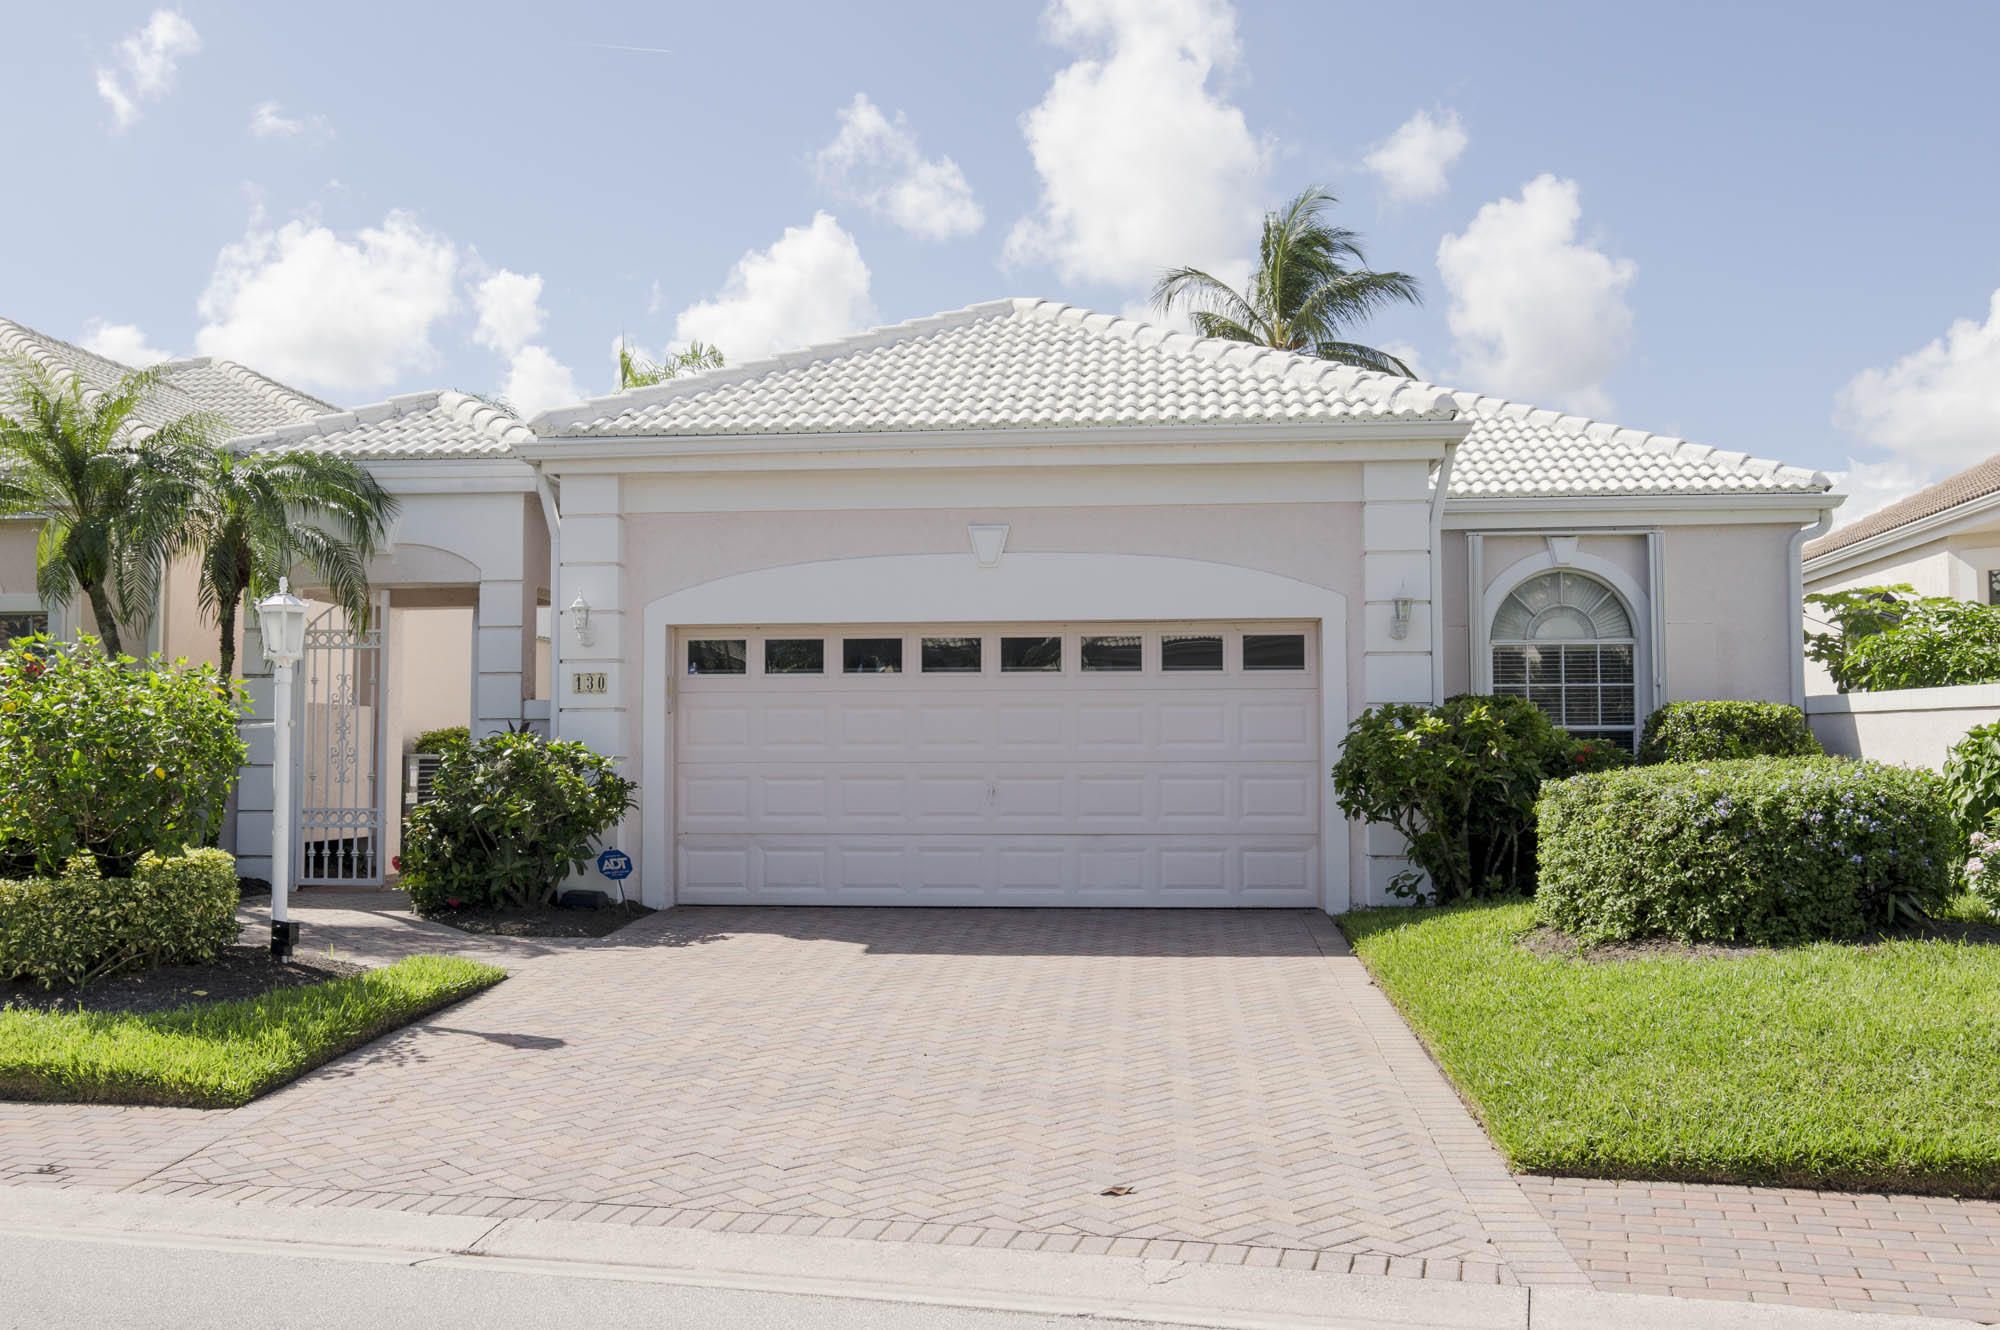 Image 3 For 130 Coral Cay Drive